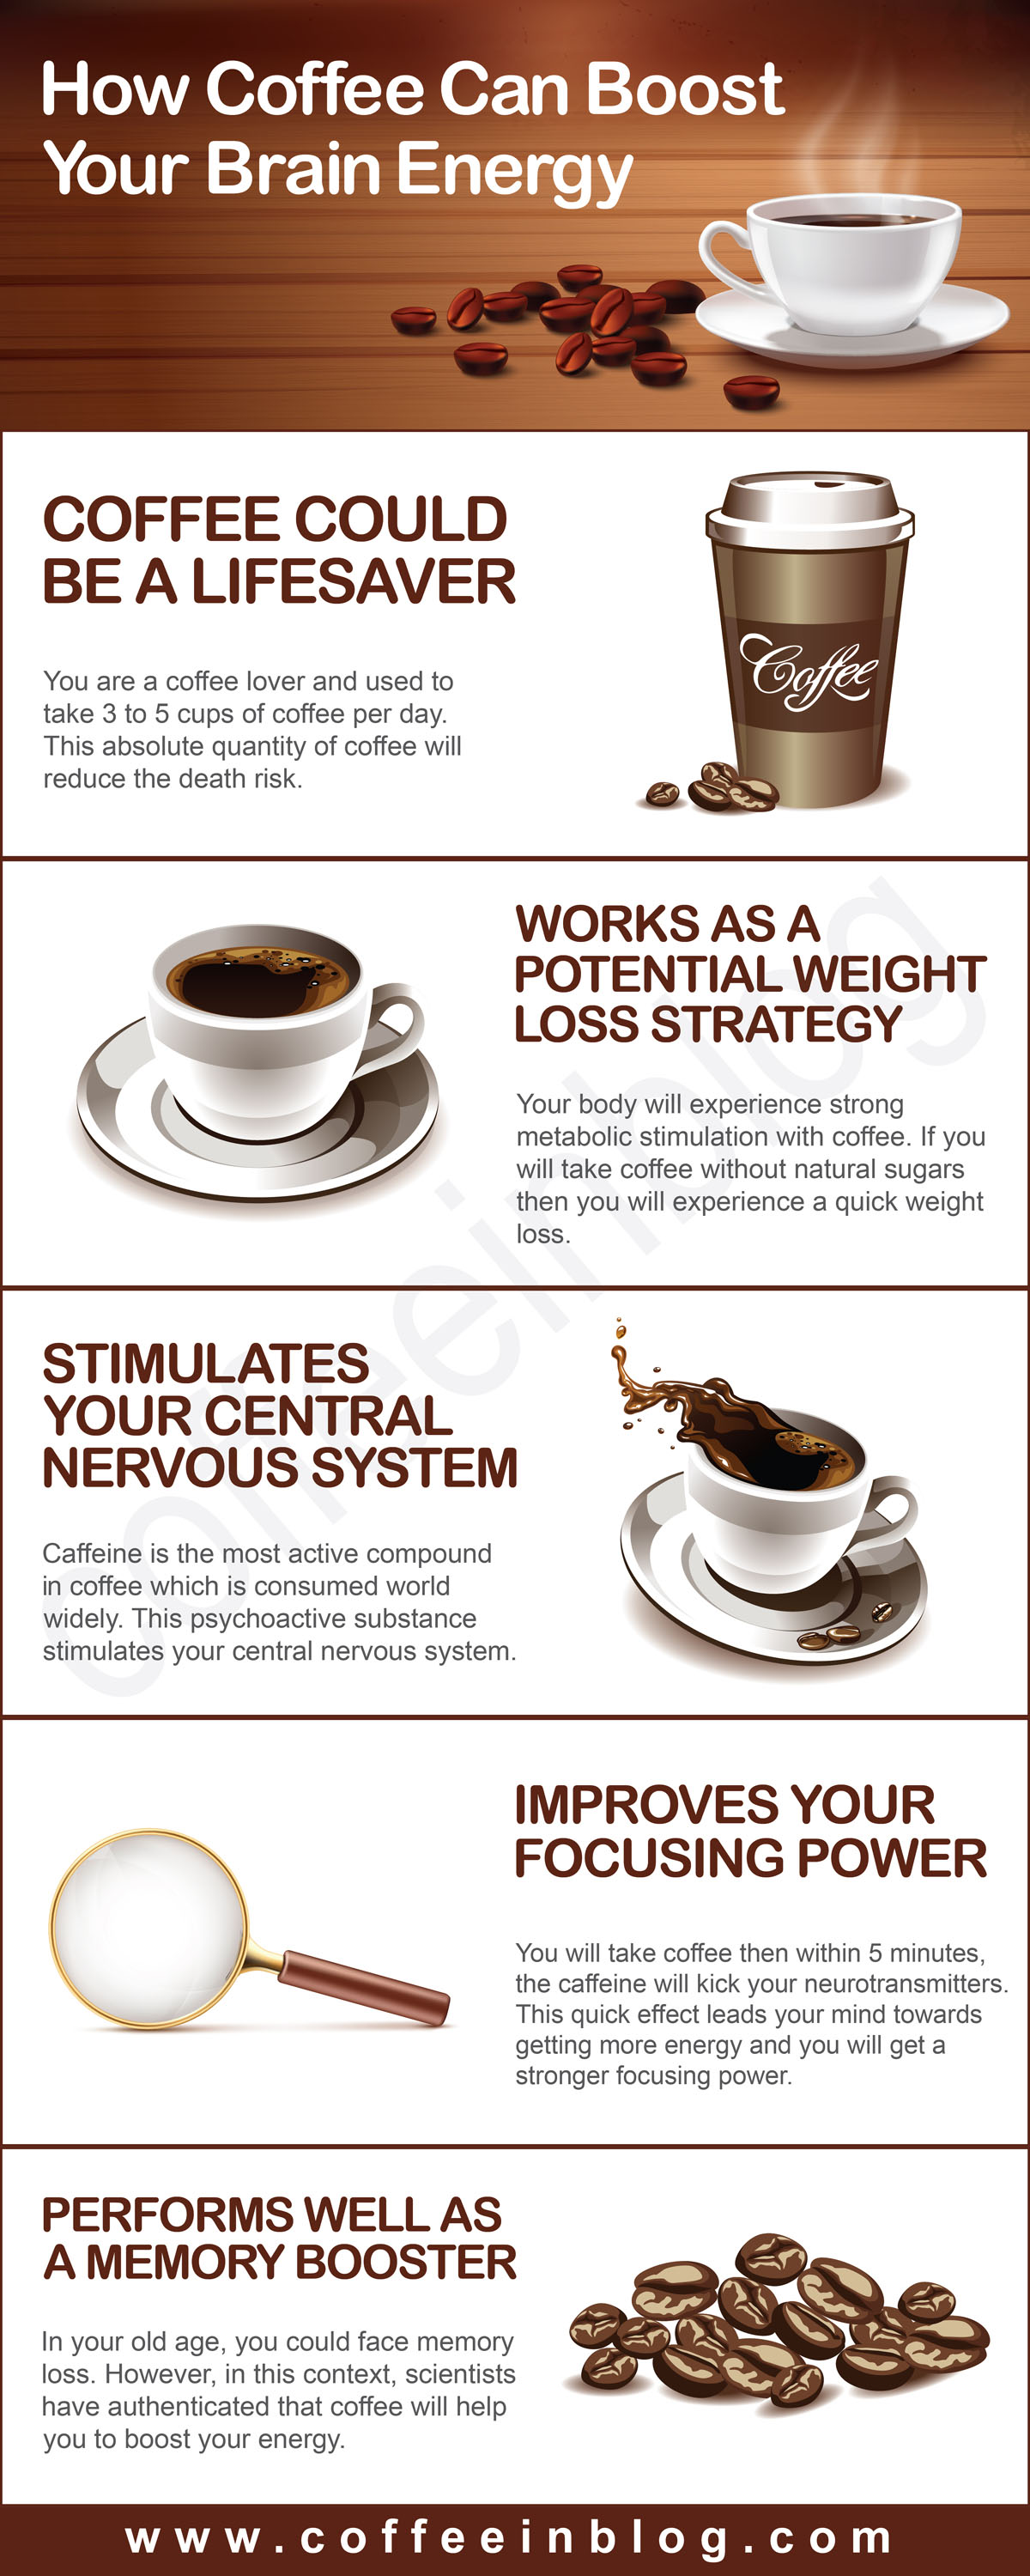 How Coffee Can Boost Your Brain Energy